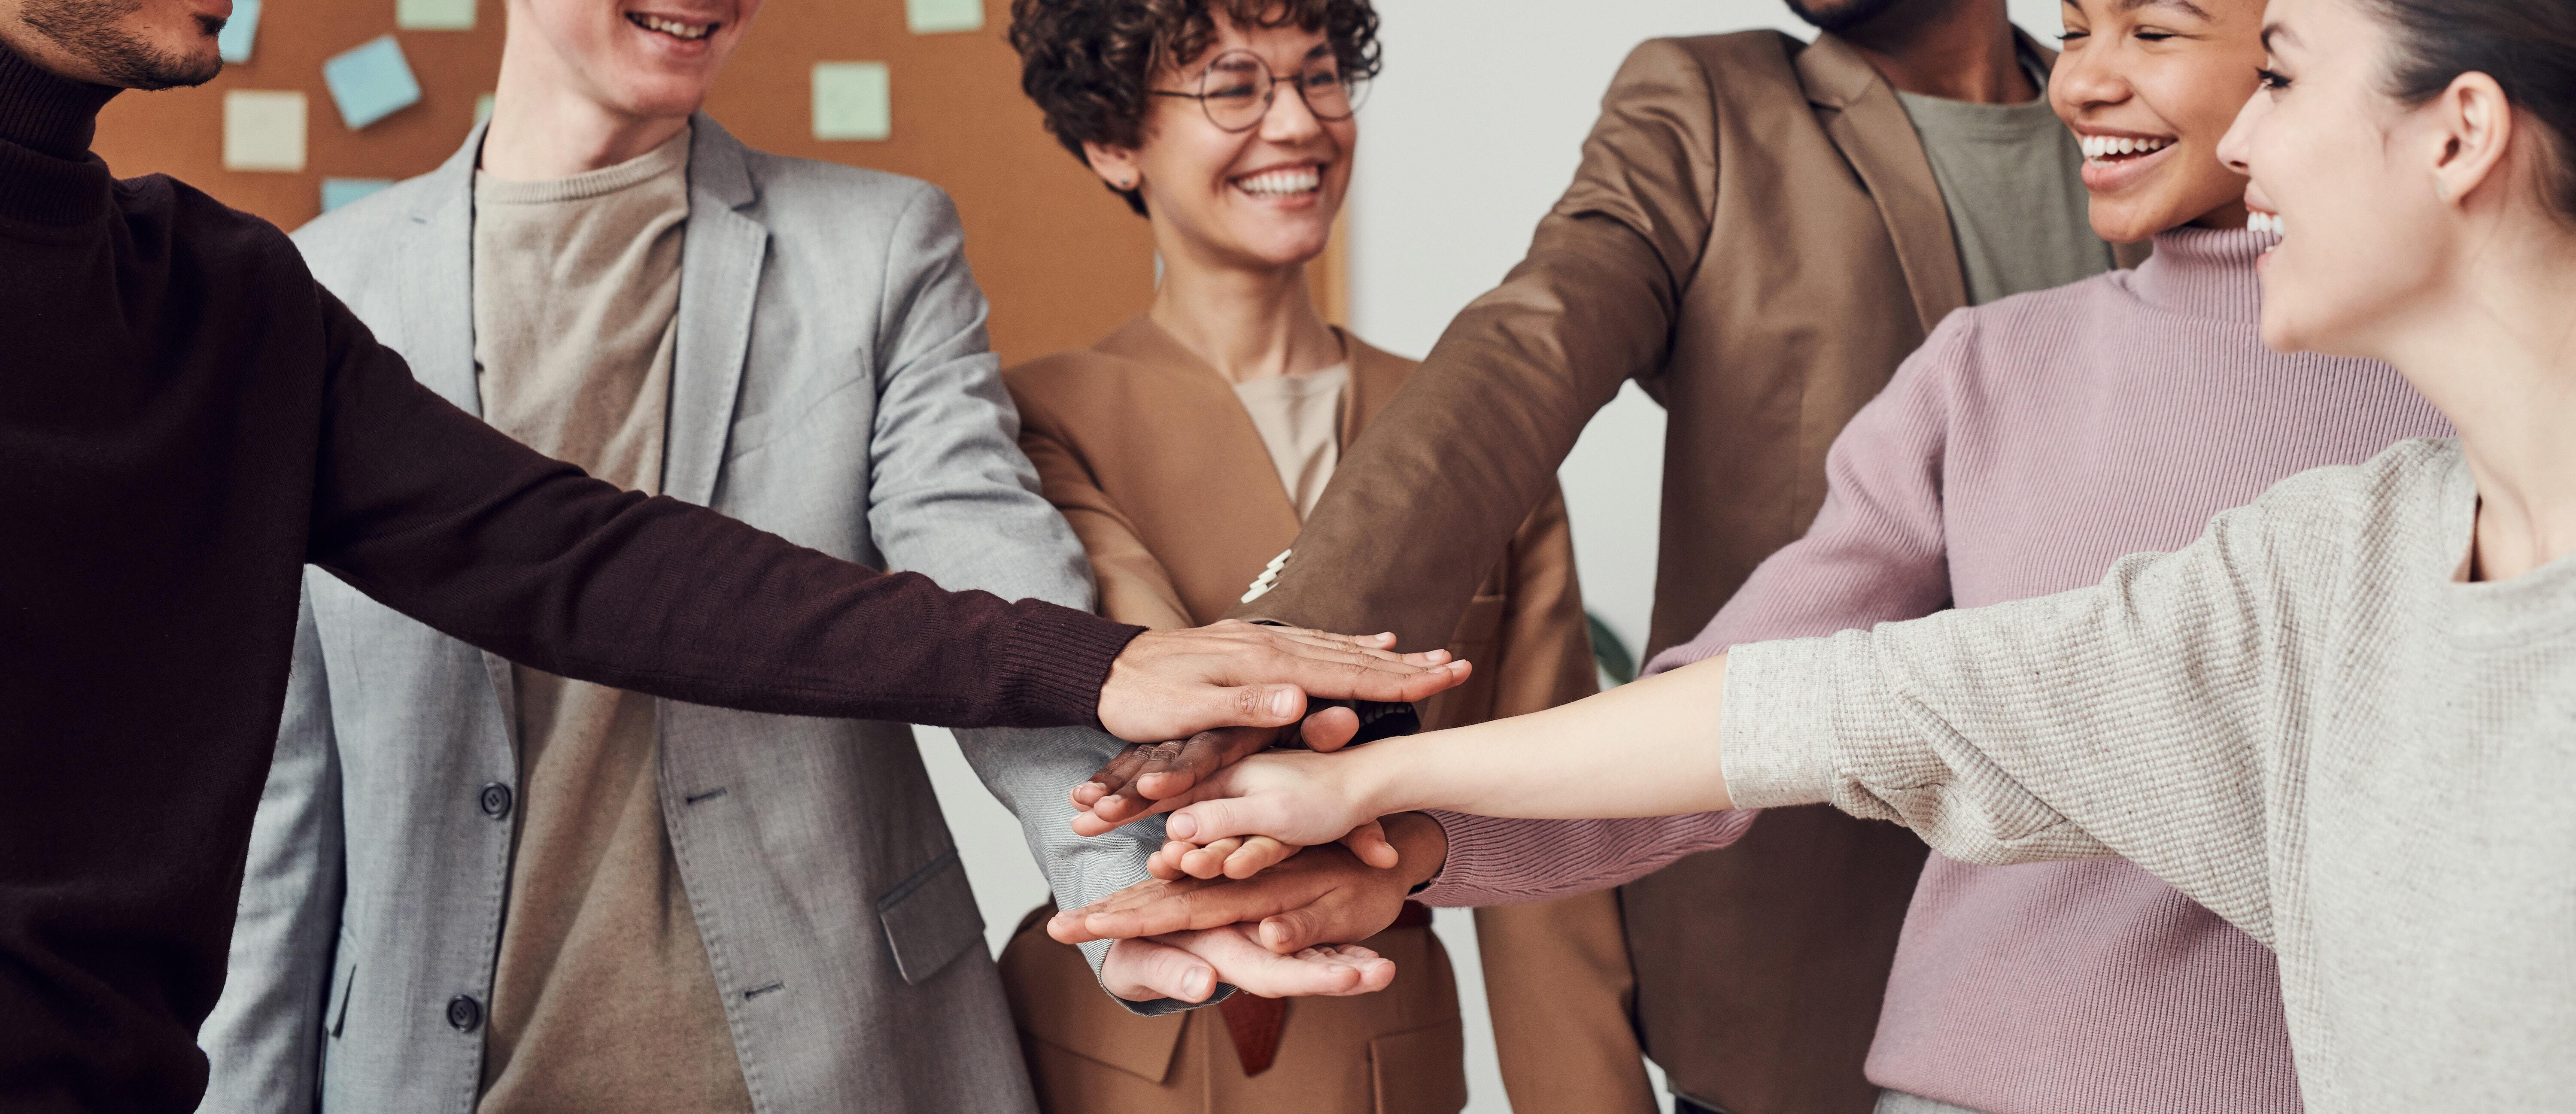 Group of co-workers smiling and putting their hands together, creating a team-like environment.